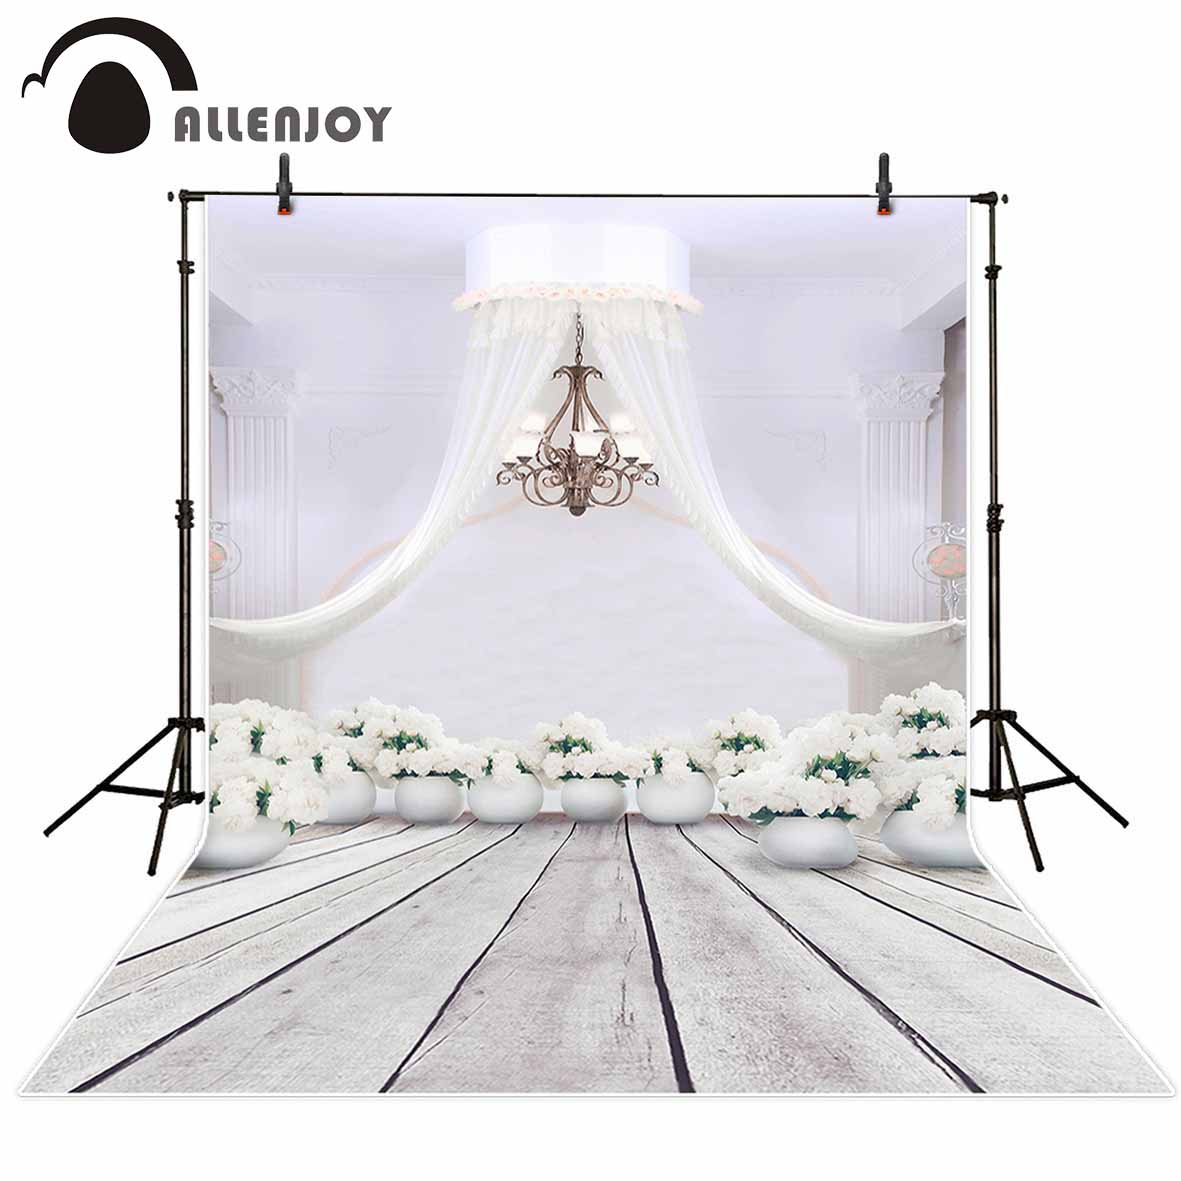 Allenjoy photography background wedding flower party sweet cute backdrop portrait shooting photo studio printed newborn allenjoy background for photo studio full moon spider black cat pumpkin halloween backdrop newborn original design fantasy props